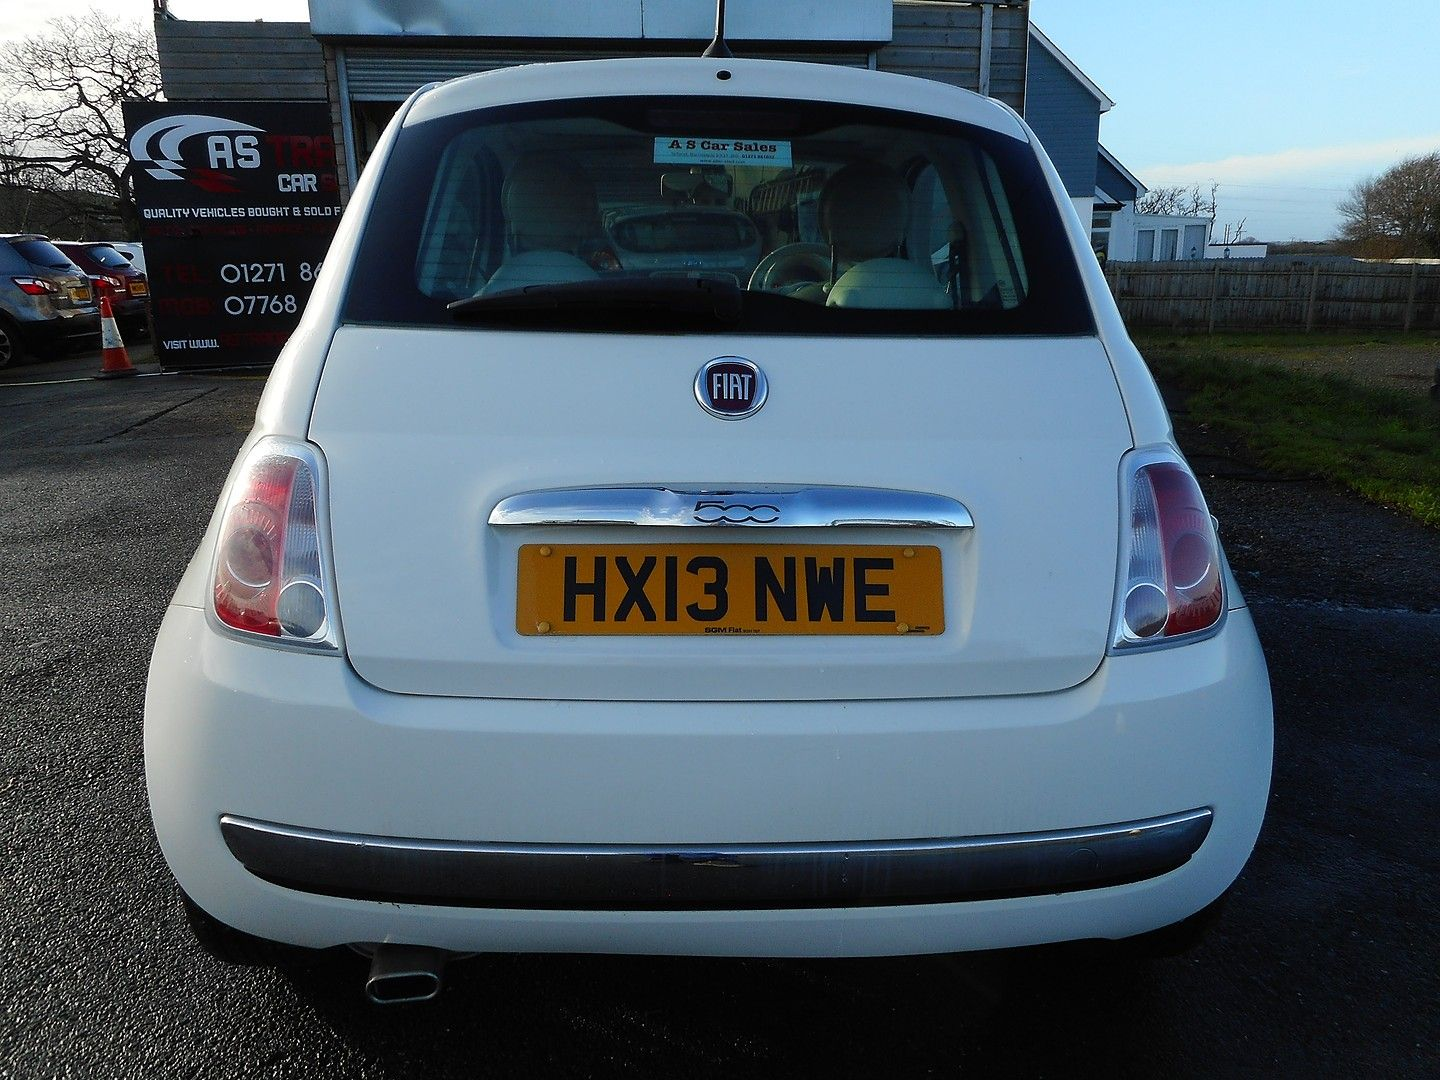 FIAT 500 1.2i Lounge S/S automatic (2013) - Picture 21